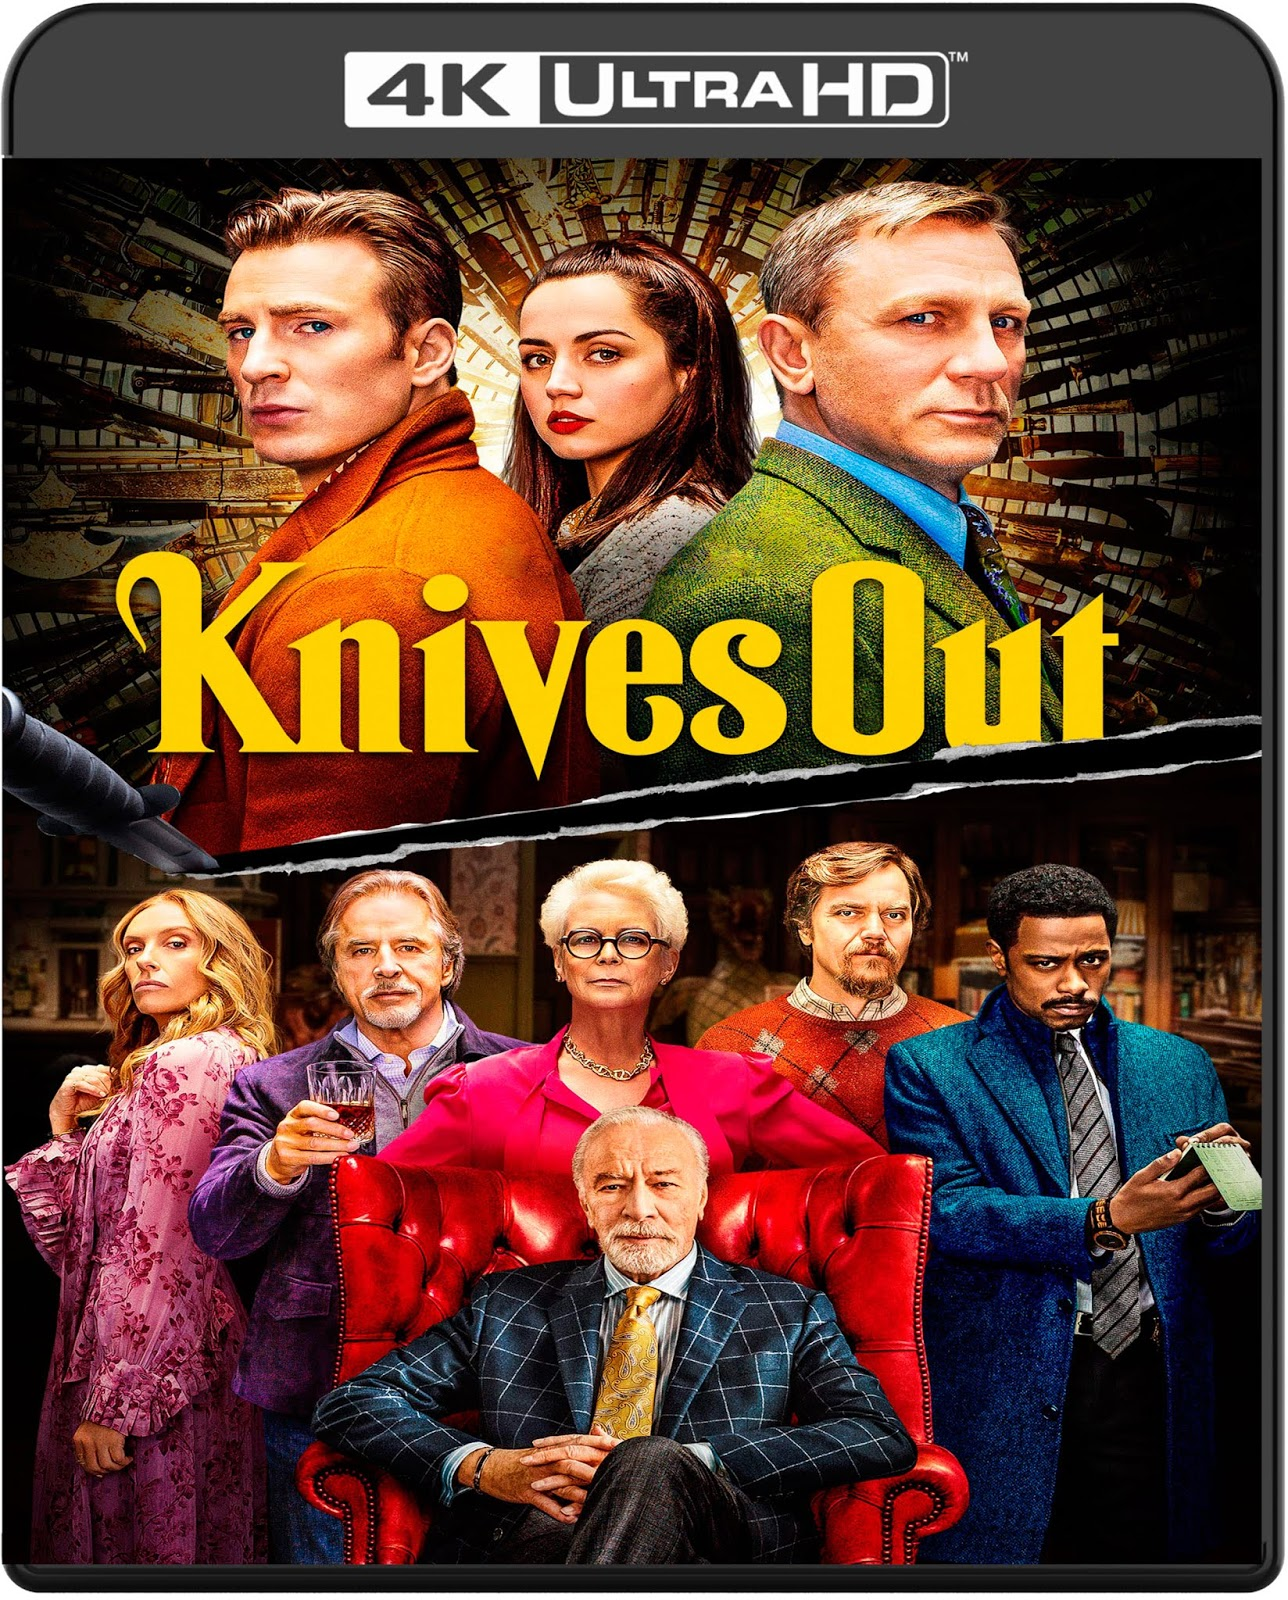 Knives Out [2019] [UHD] [2160p] [Latino] [Proper]